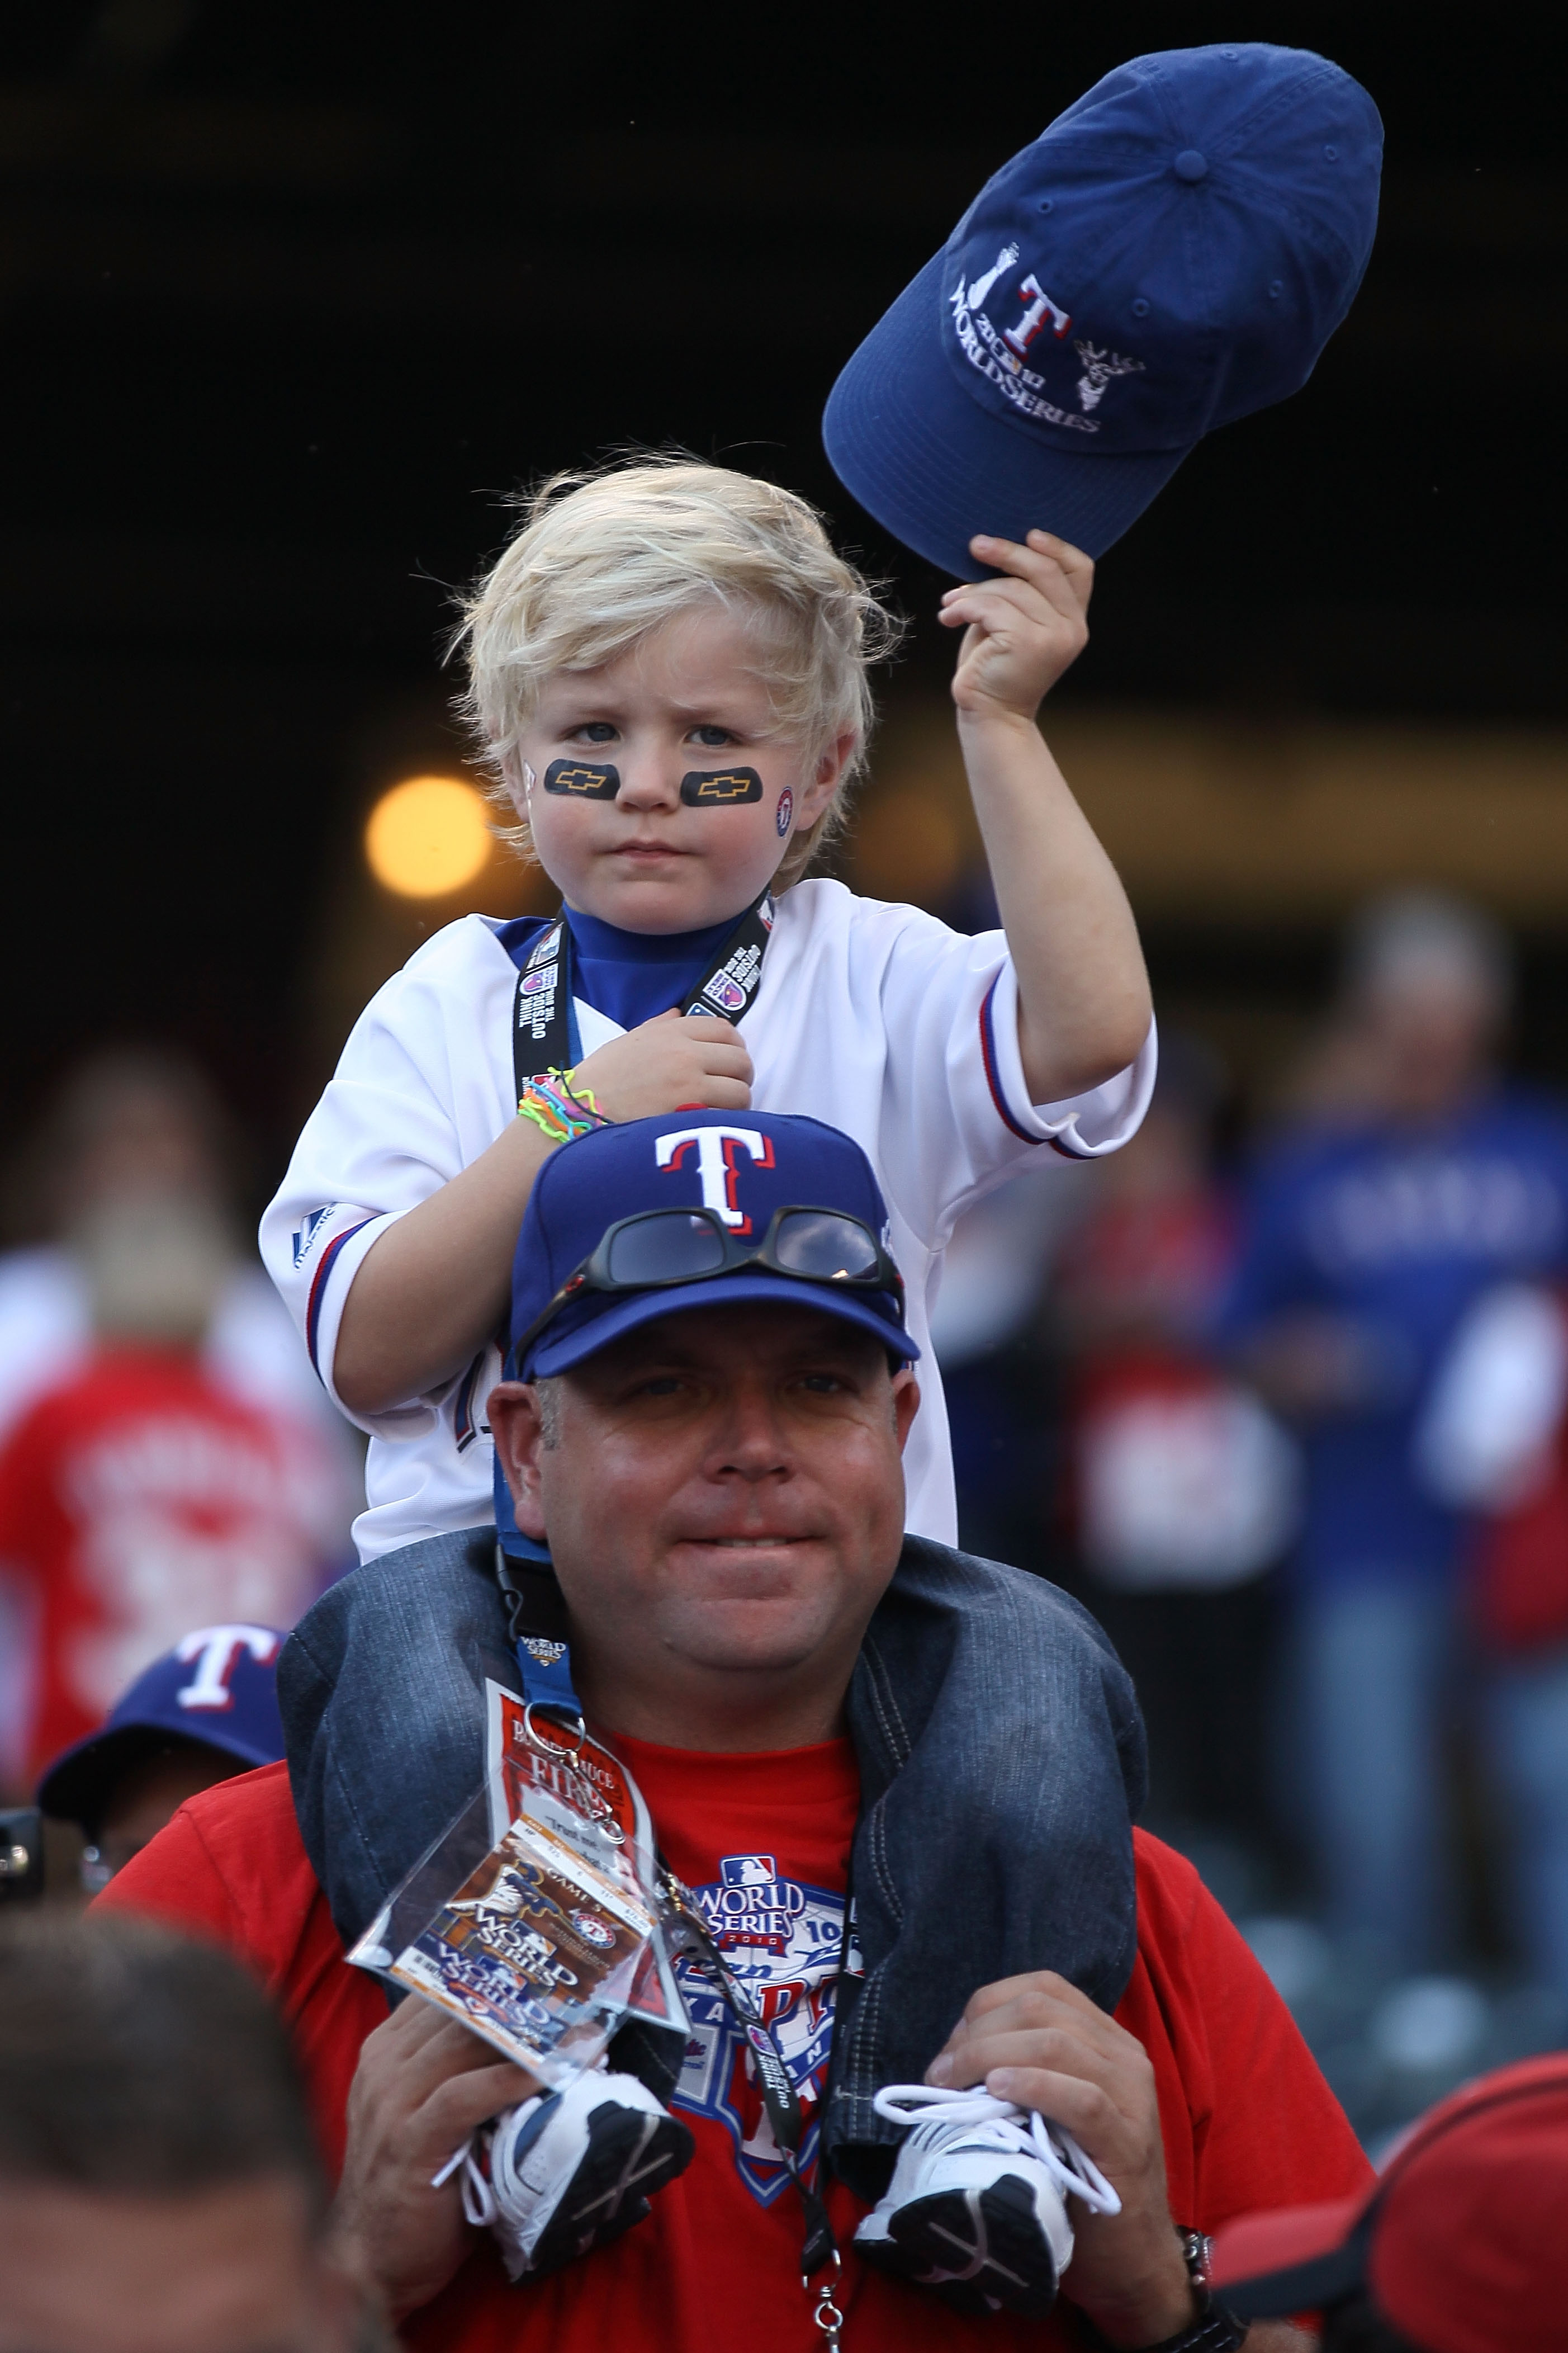 ARLINGTON, TX - NOVEMBER 01:  Fans of the Texas Rangers watch batting practice prior to the Rangers playing against the San Francisco Giants in Game Five of the 2010 MLB World Series at Rangers Ballpark in Arlington on November 1, 2010 in Arlington, Texas